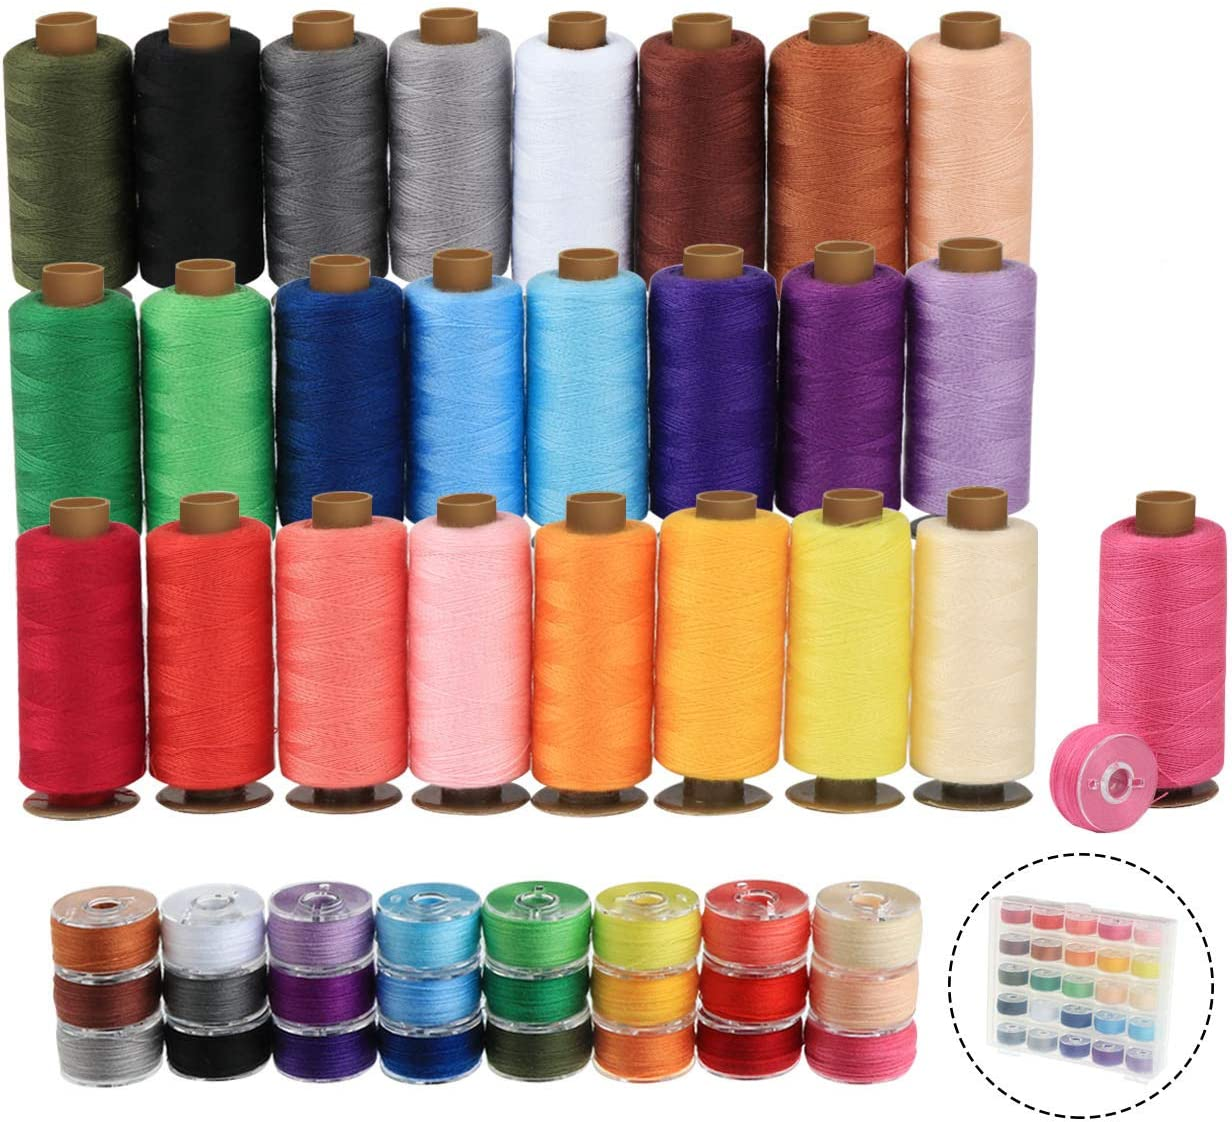 LBDK 715-1 bobbin of thread for sewing any textiles very resistant thread Polyester 100 meters yellow Multi-purpose